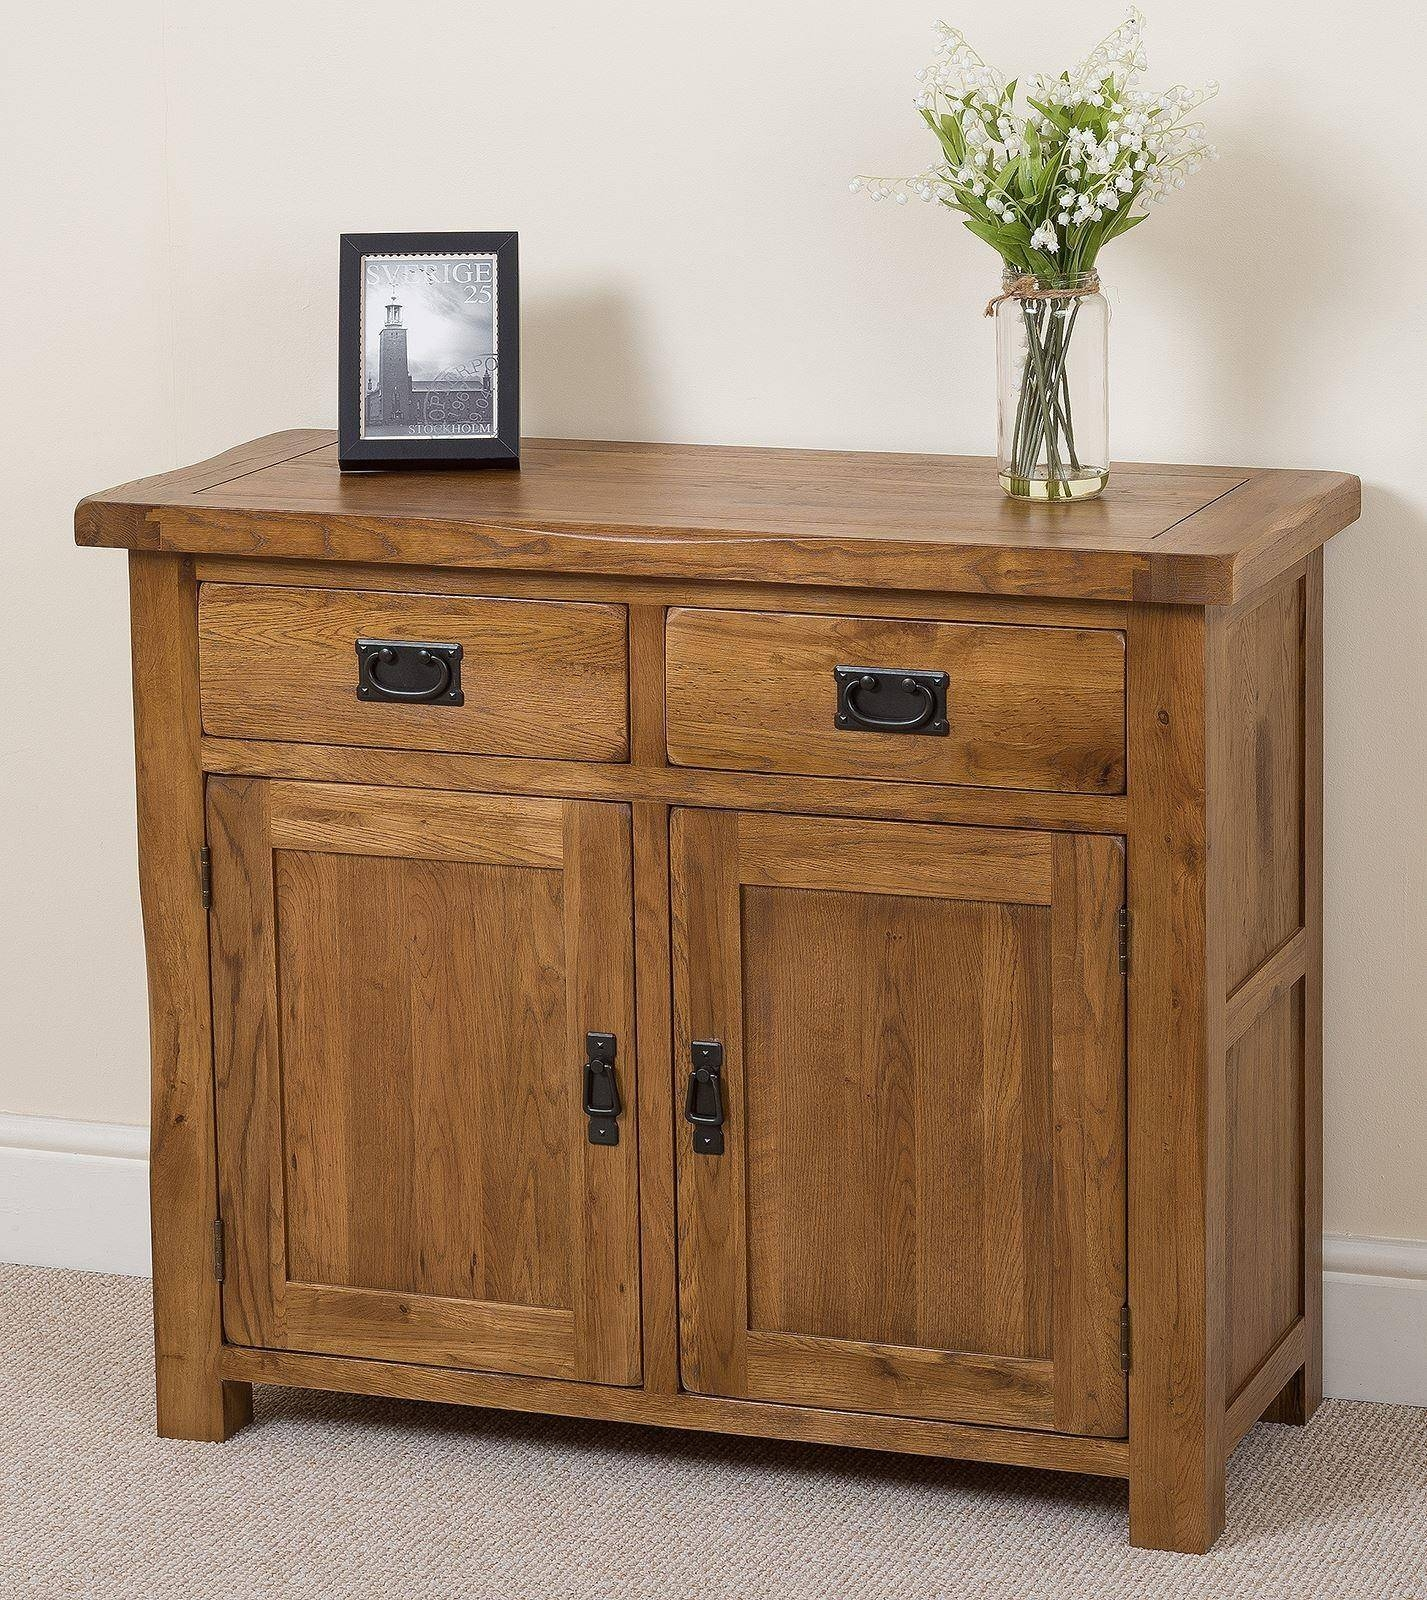 Cotswold Rustic Oak Small Sideboard | Cotswold Oak Furniture Throughout Ready Assembled Sideboards (#9 of 20)